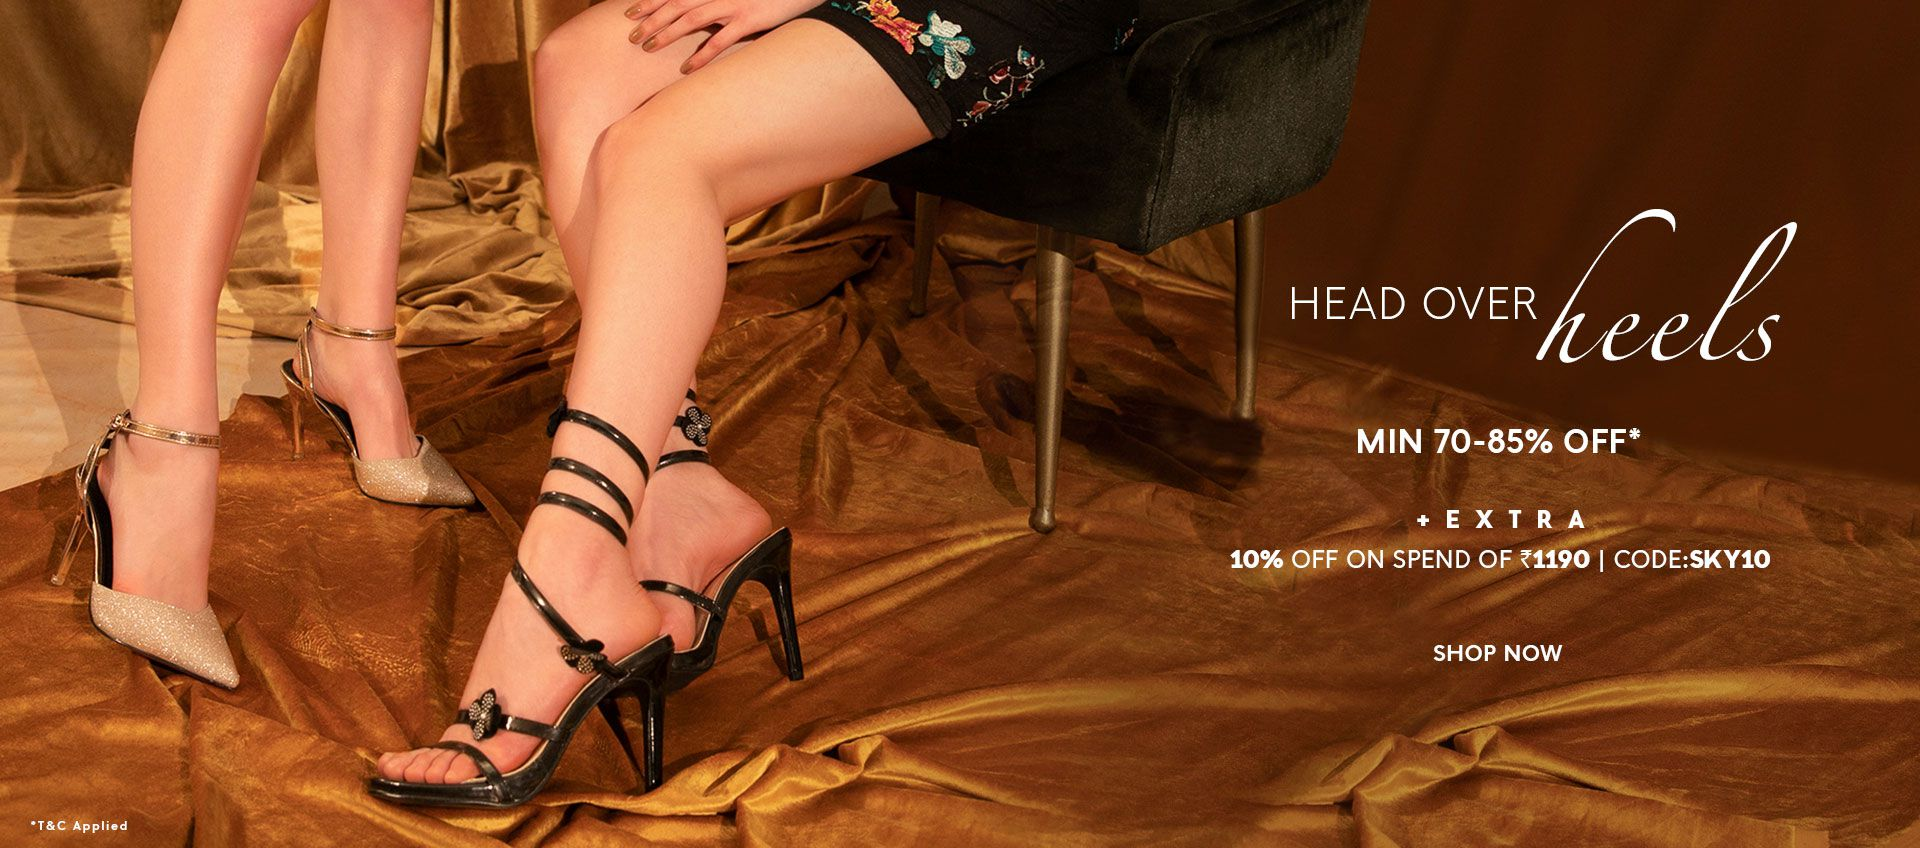 MIN 70-85% % OFF ON SHOES